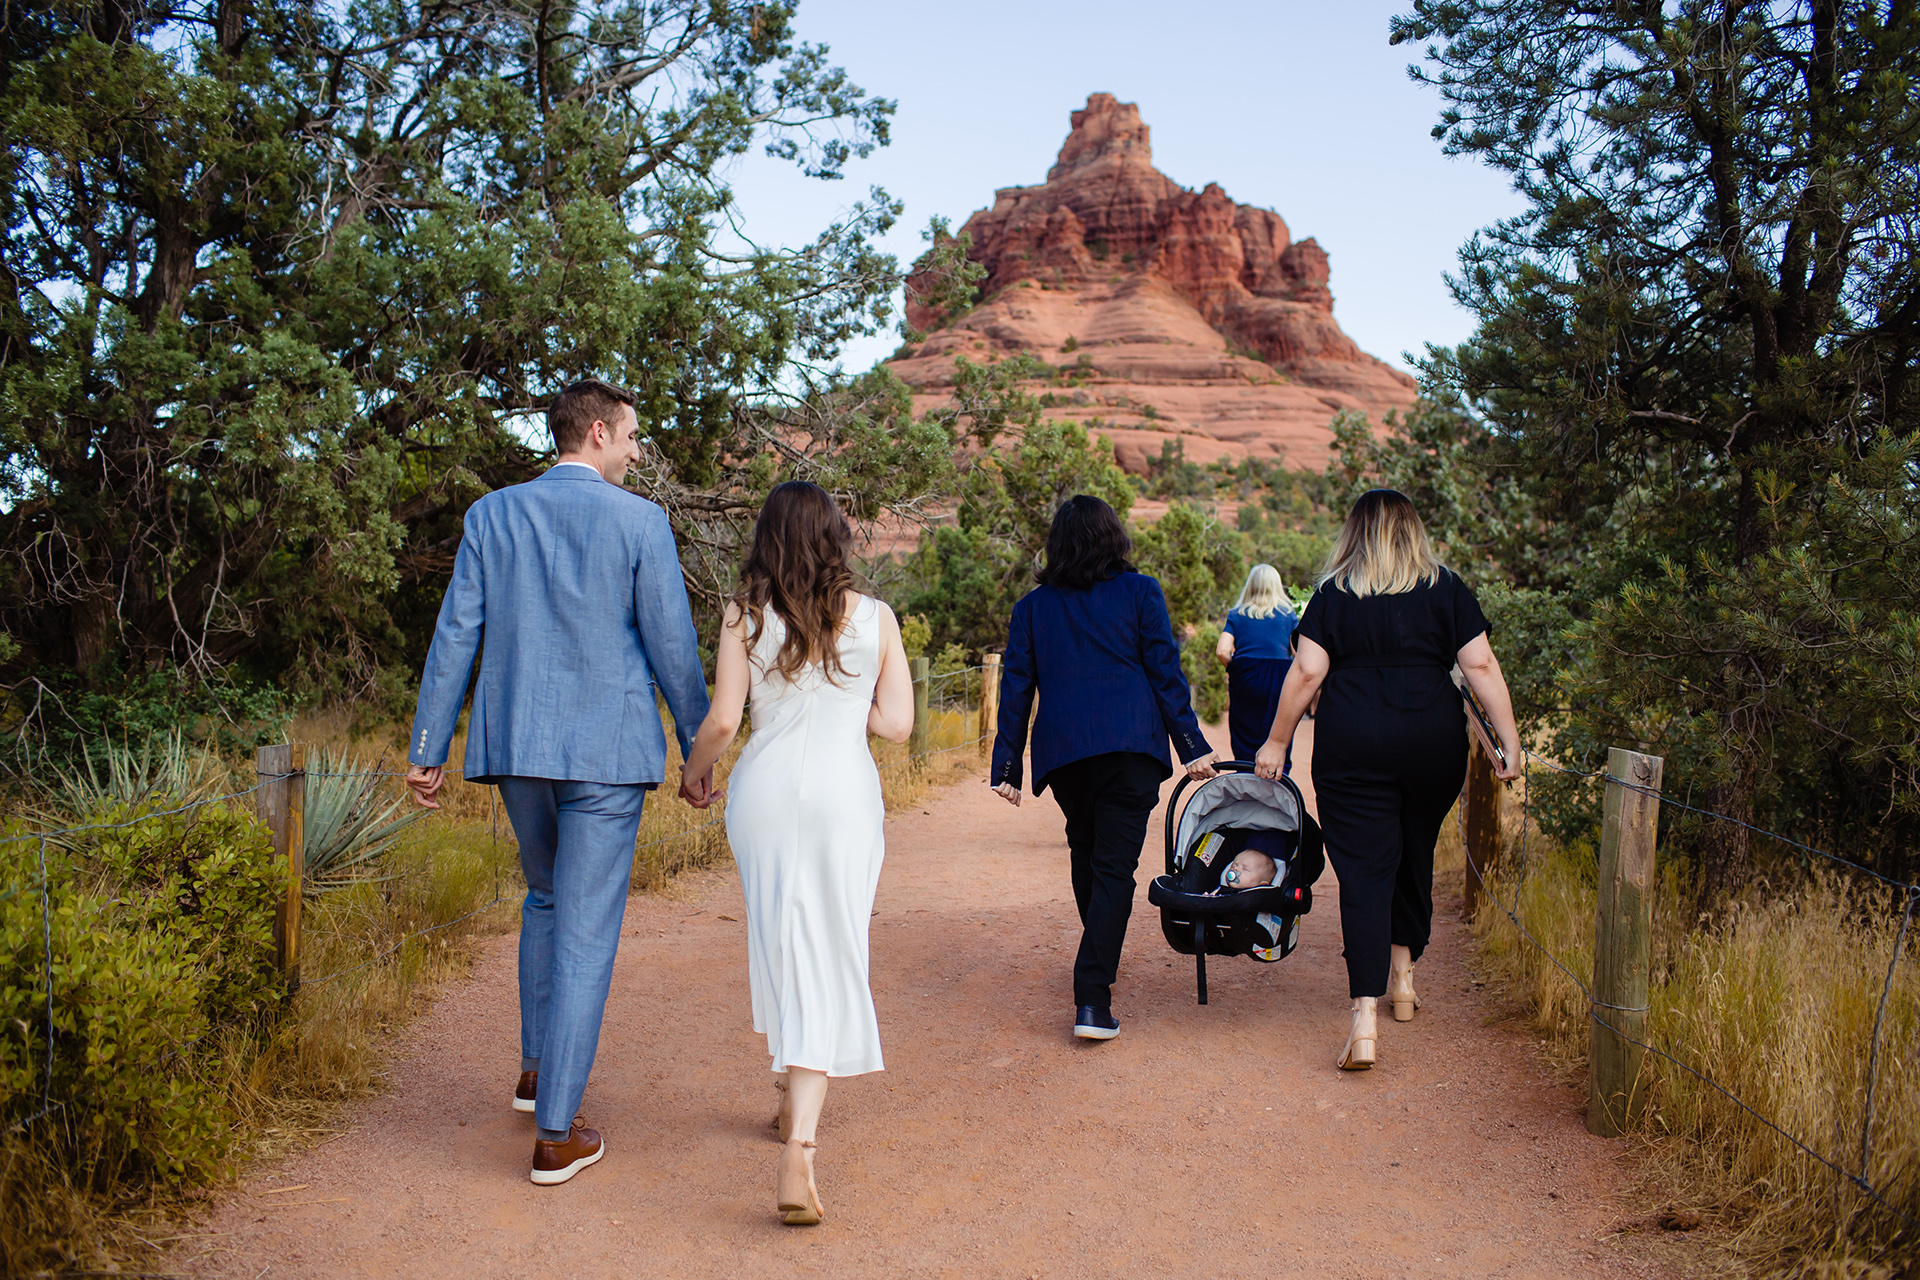 Sedona Wedding & Elopement Photography | The bride and groom hold hands as they hike toward their chosen location